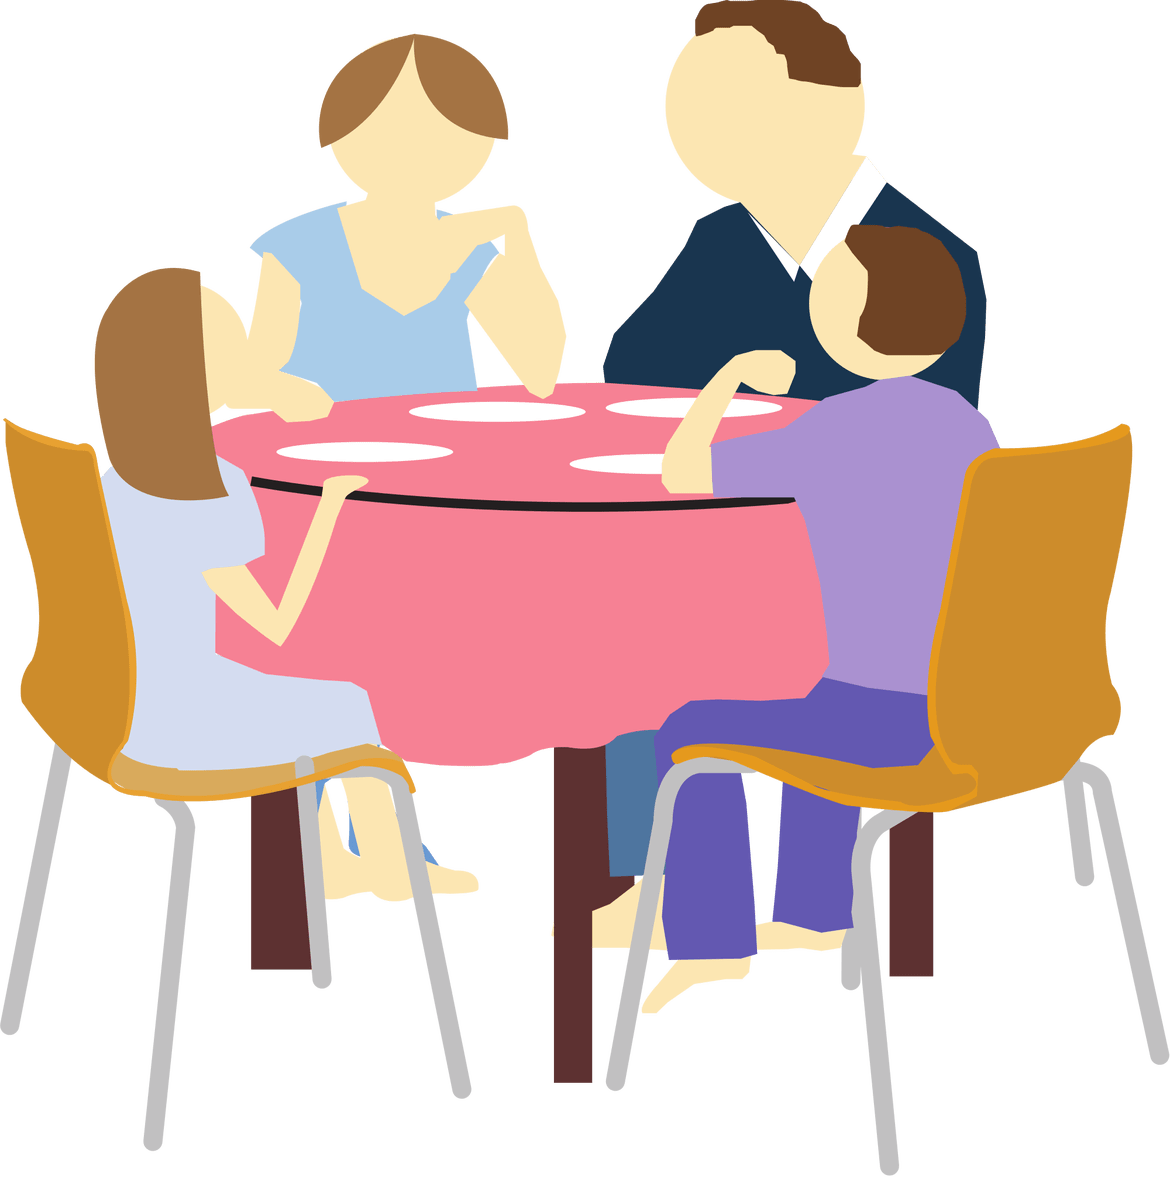 jpg royalty free Meal clipart family eating.  tips enjoy stress.